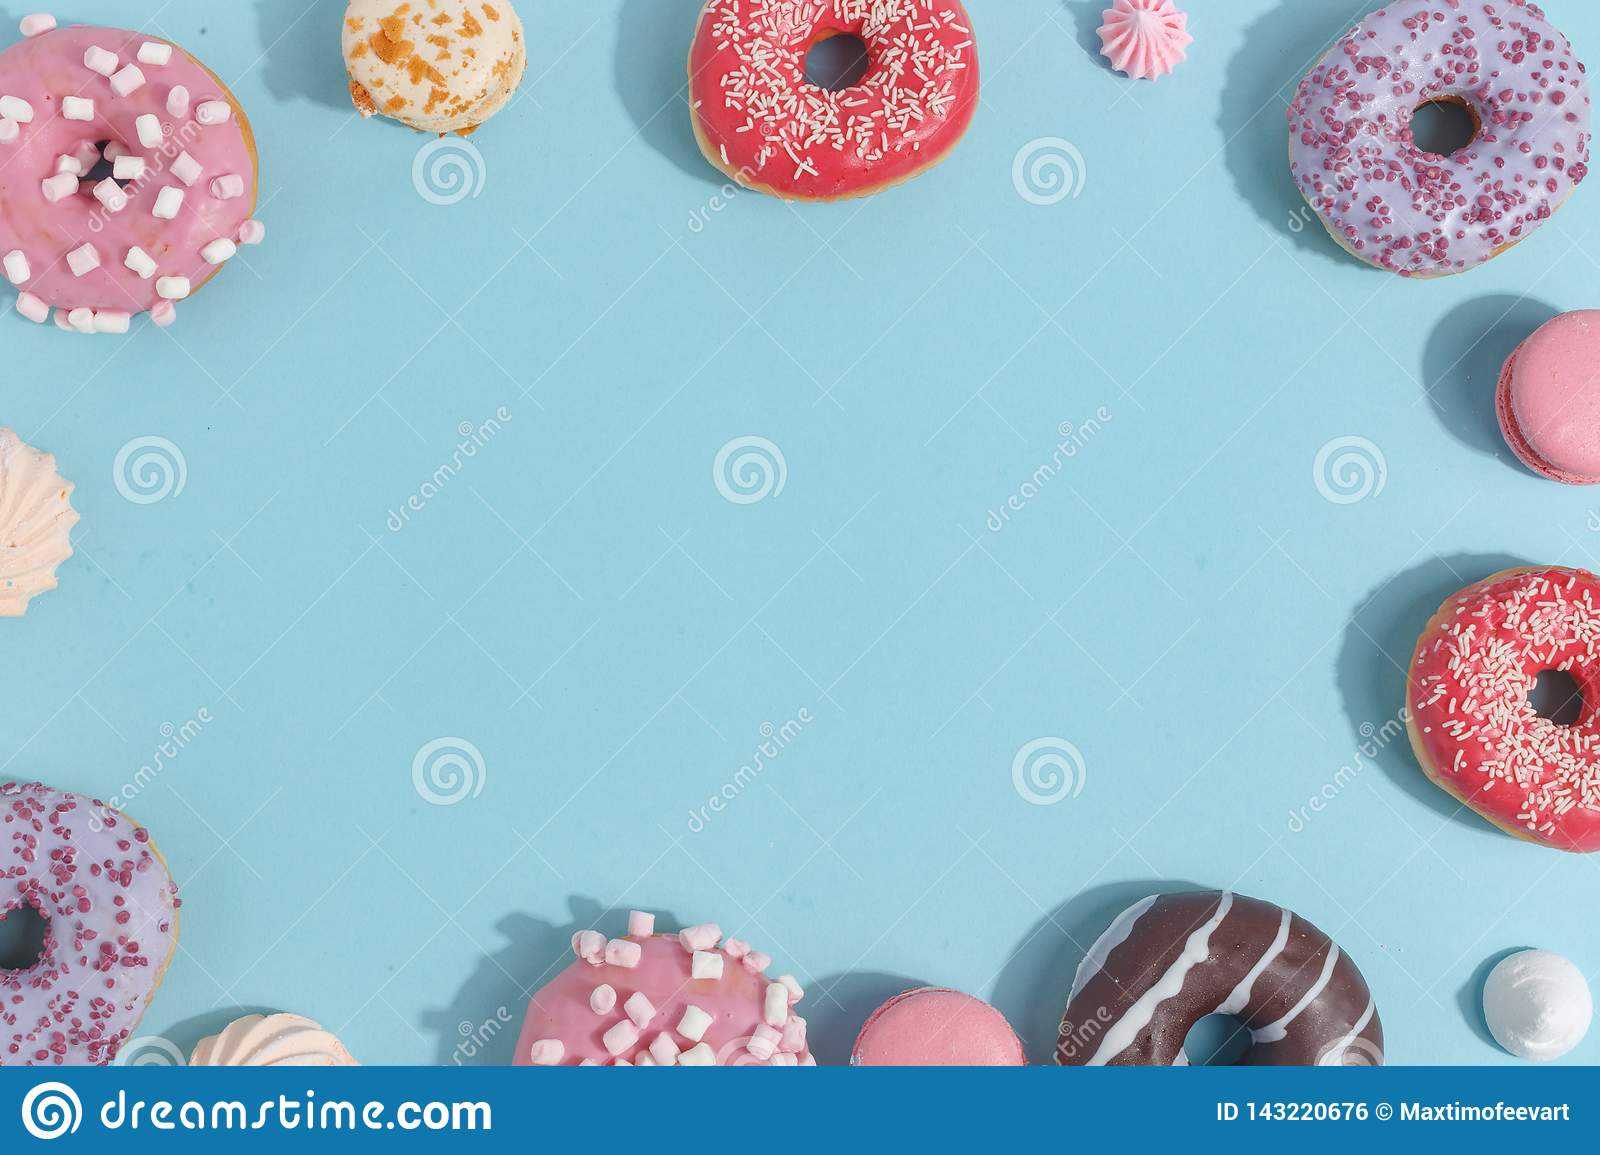 Composition of sweet glazed donuts and sweets on a blue background. Top view. Concept of children's holiday. Space for copy